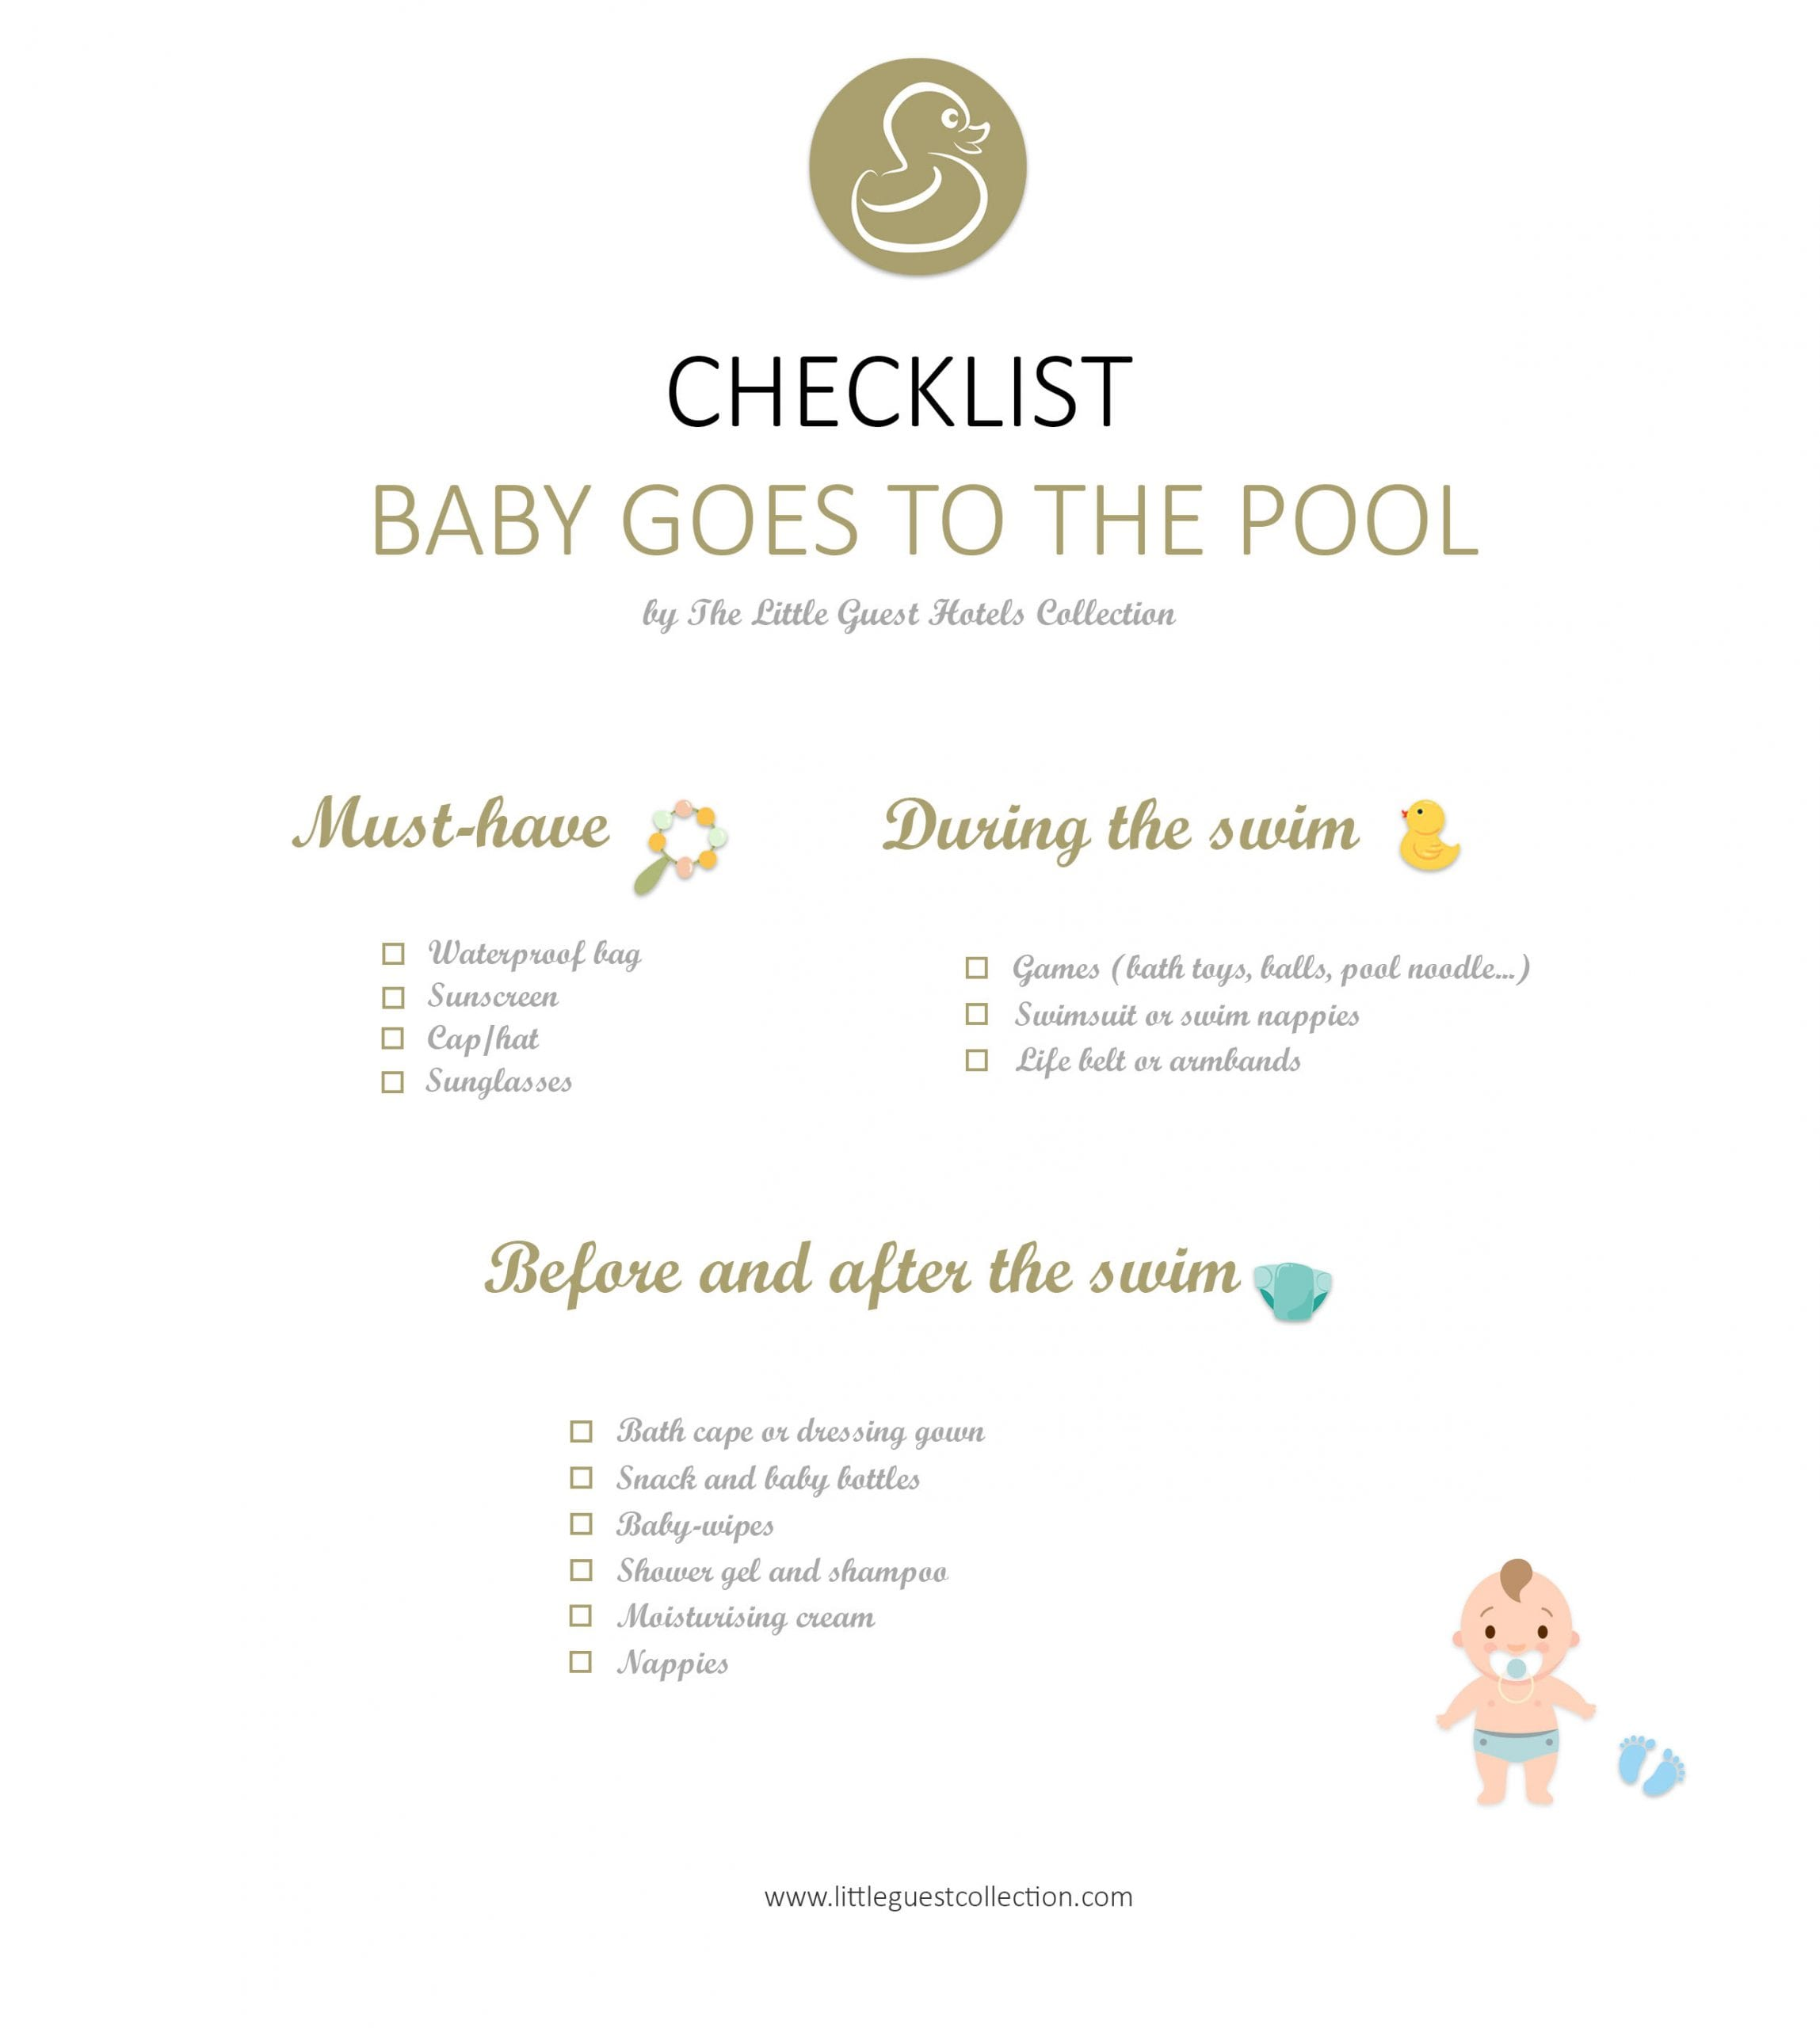 Things you should take to the pool for your baby